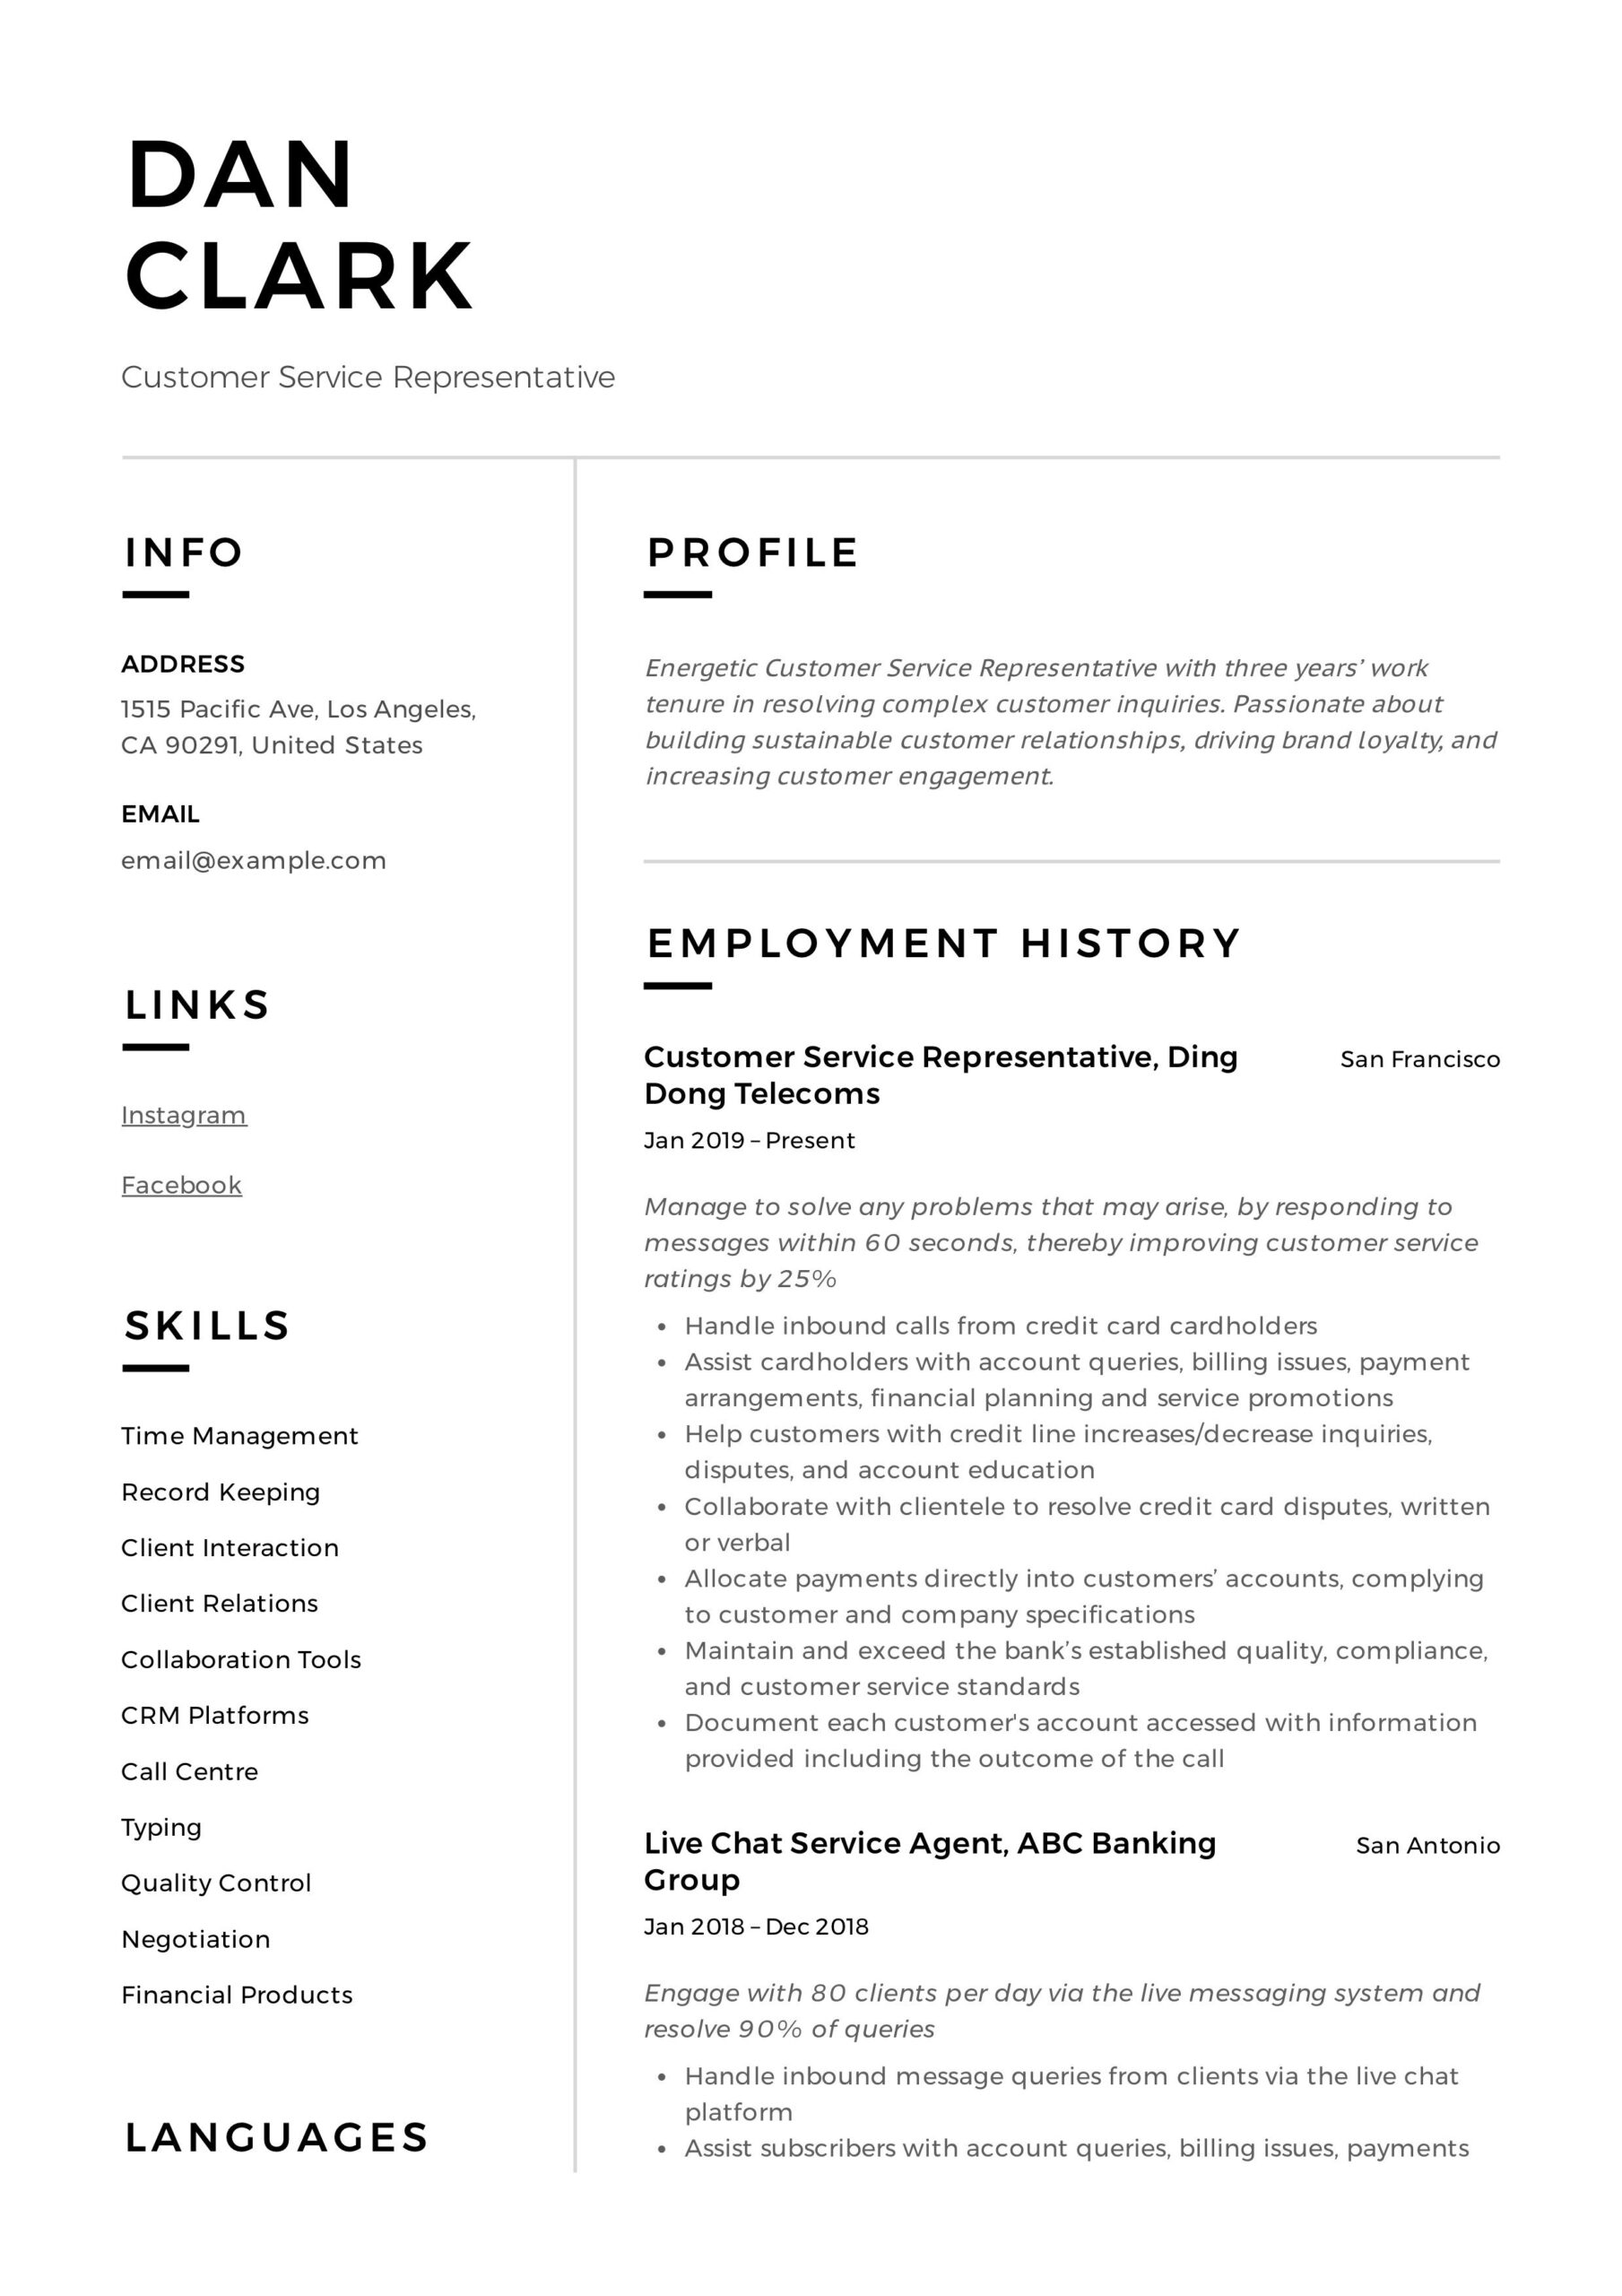 customer service representative resume sample in examples cover letter writing services Resume Customer Service Resume Examples 2020